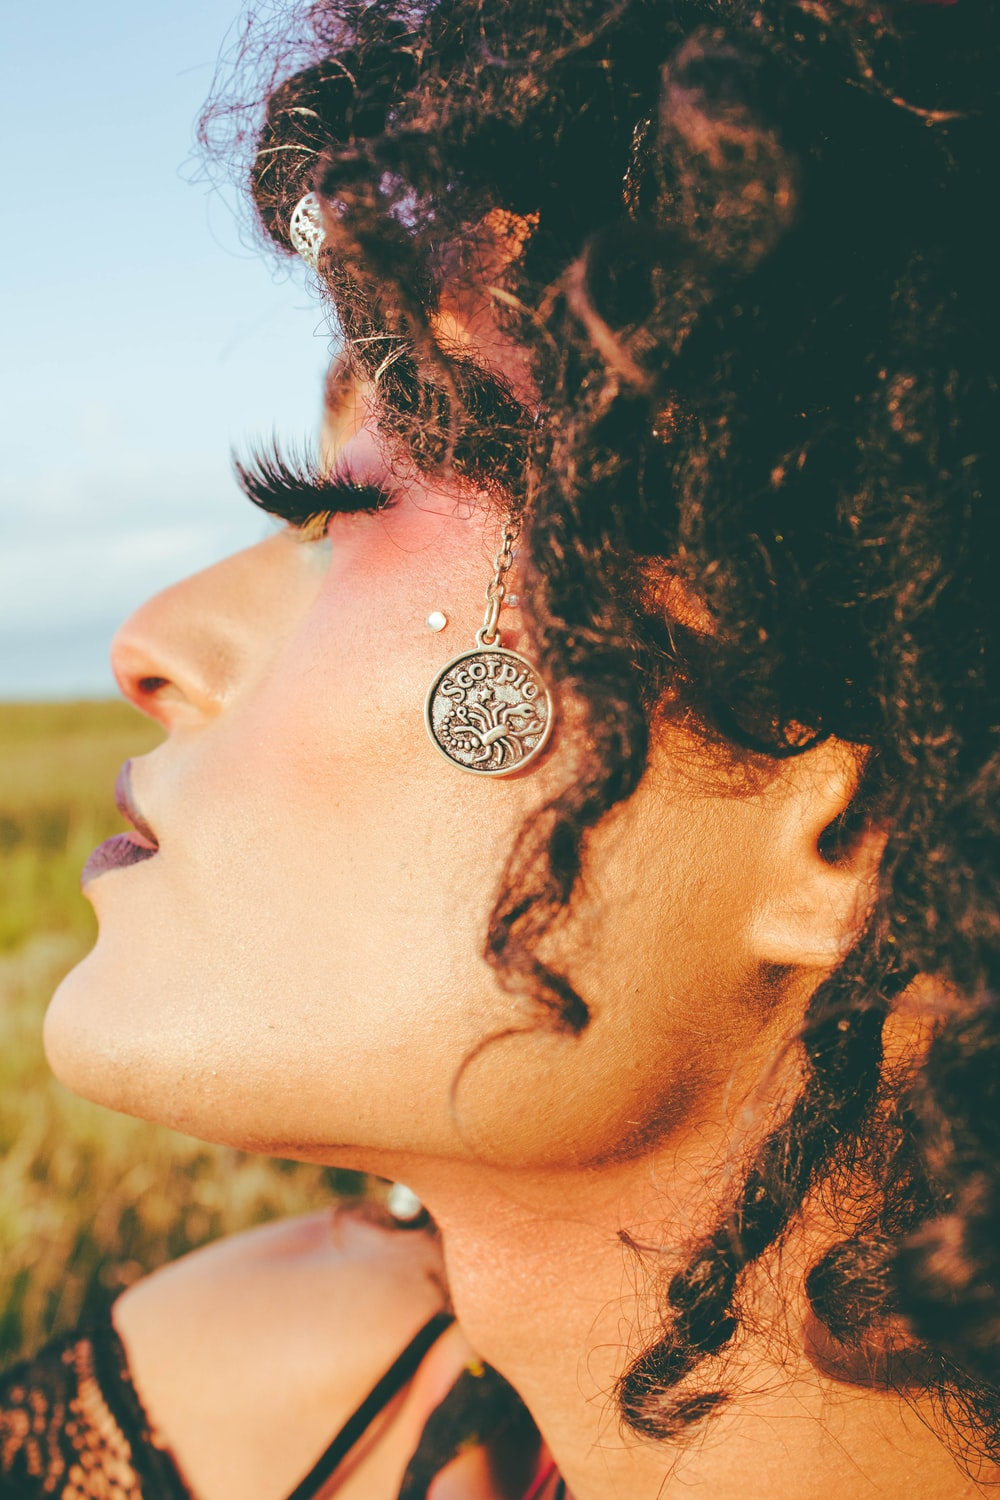 woman with black hair and silver stud earrings